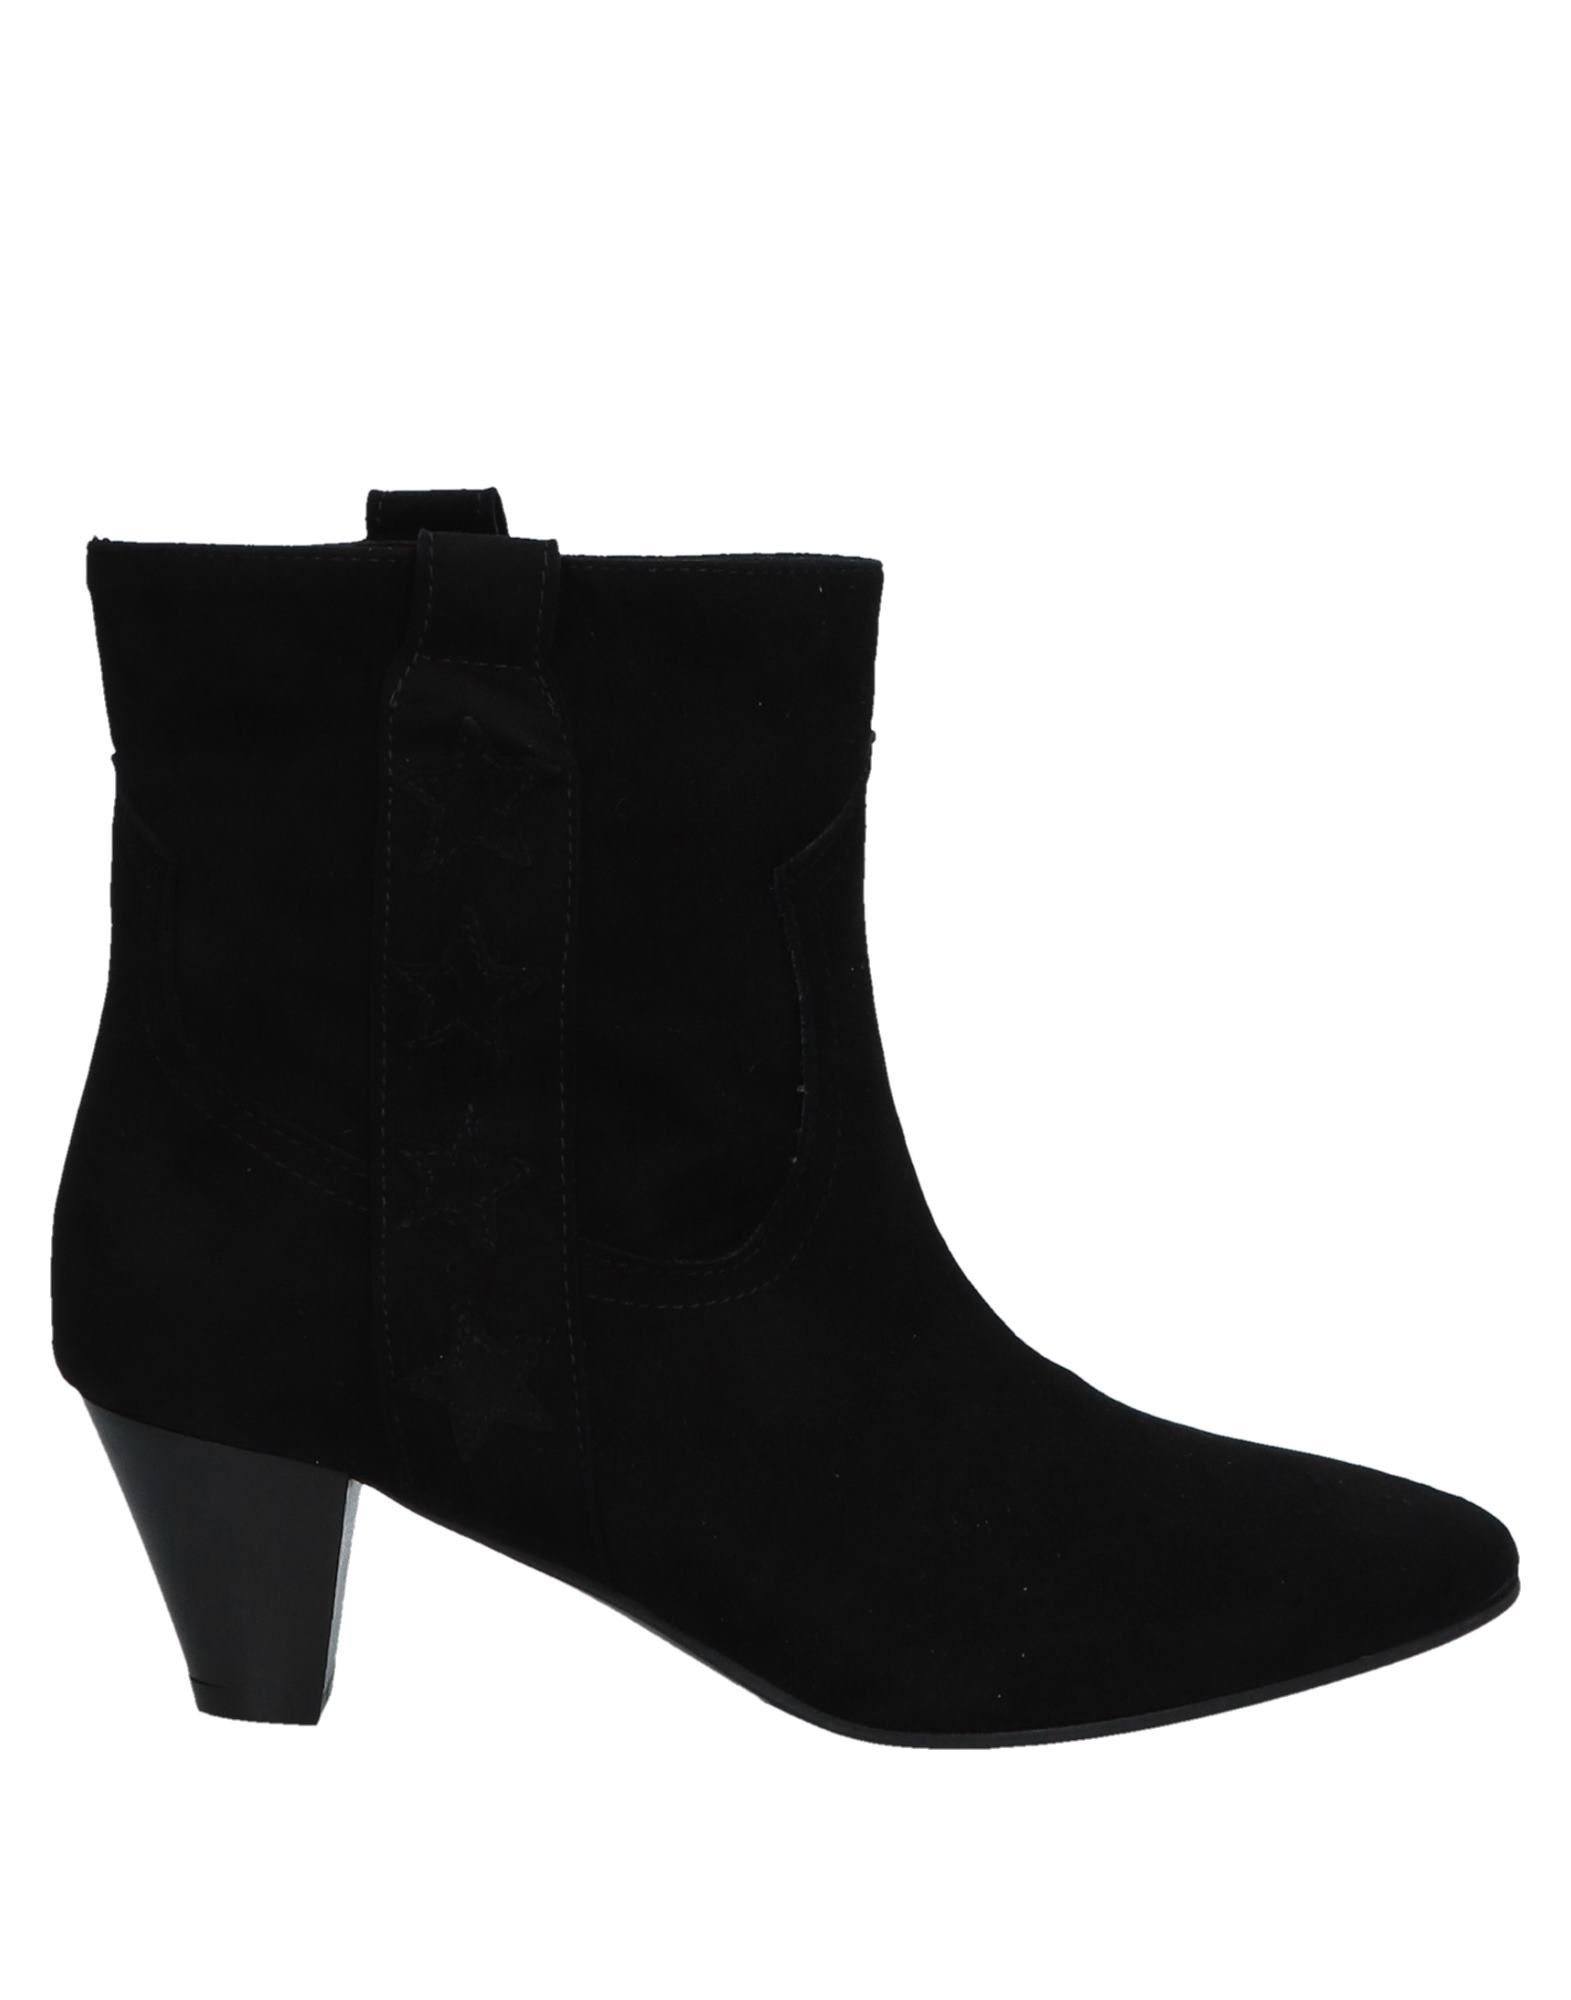 Bottine Marc Ellis Femme - Bottines Marc Ellis Noir Chaussures casual sauvages